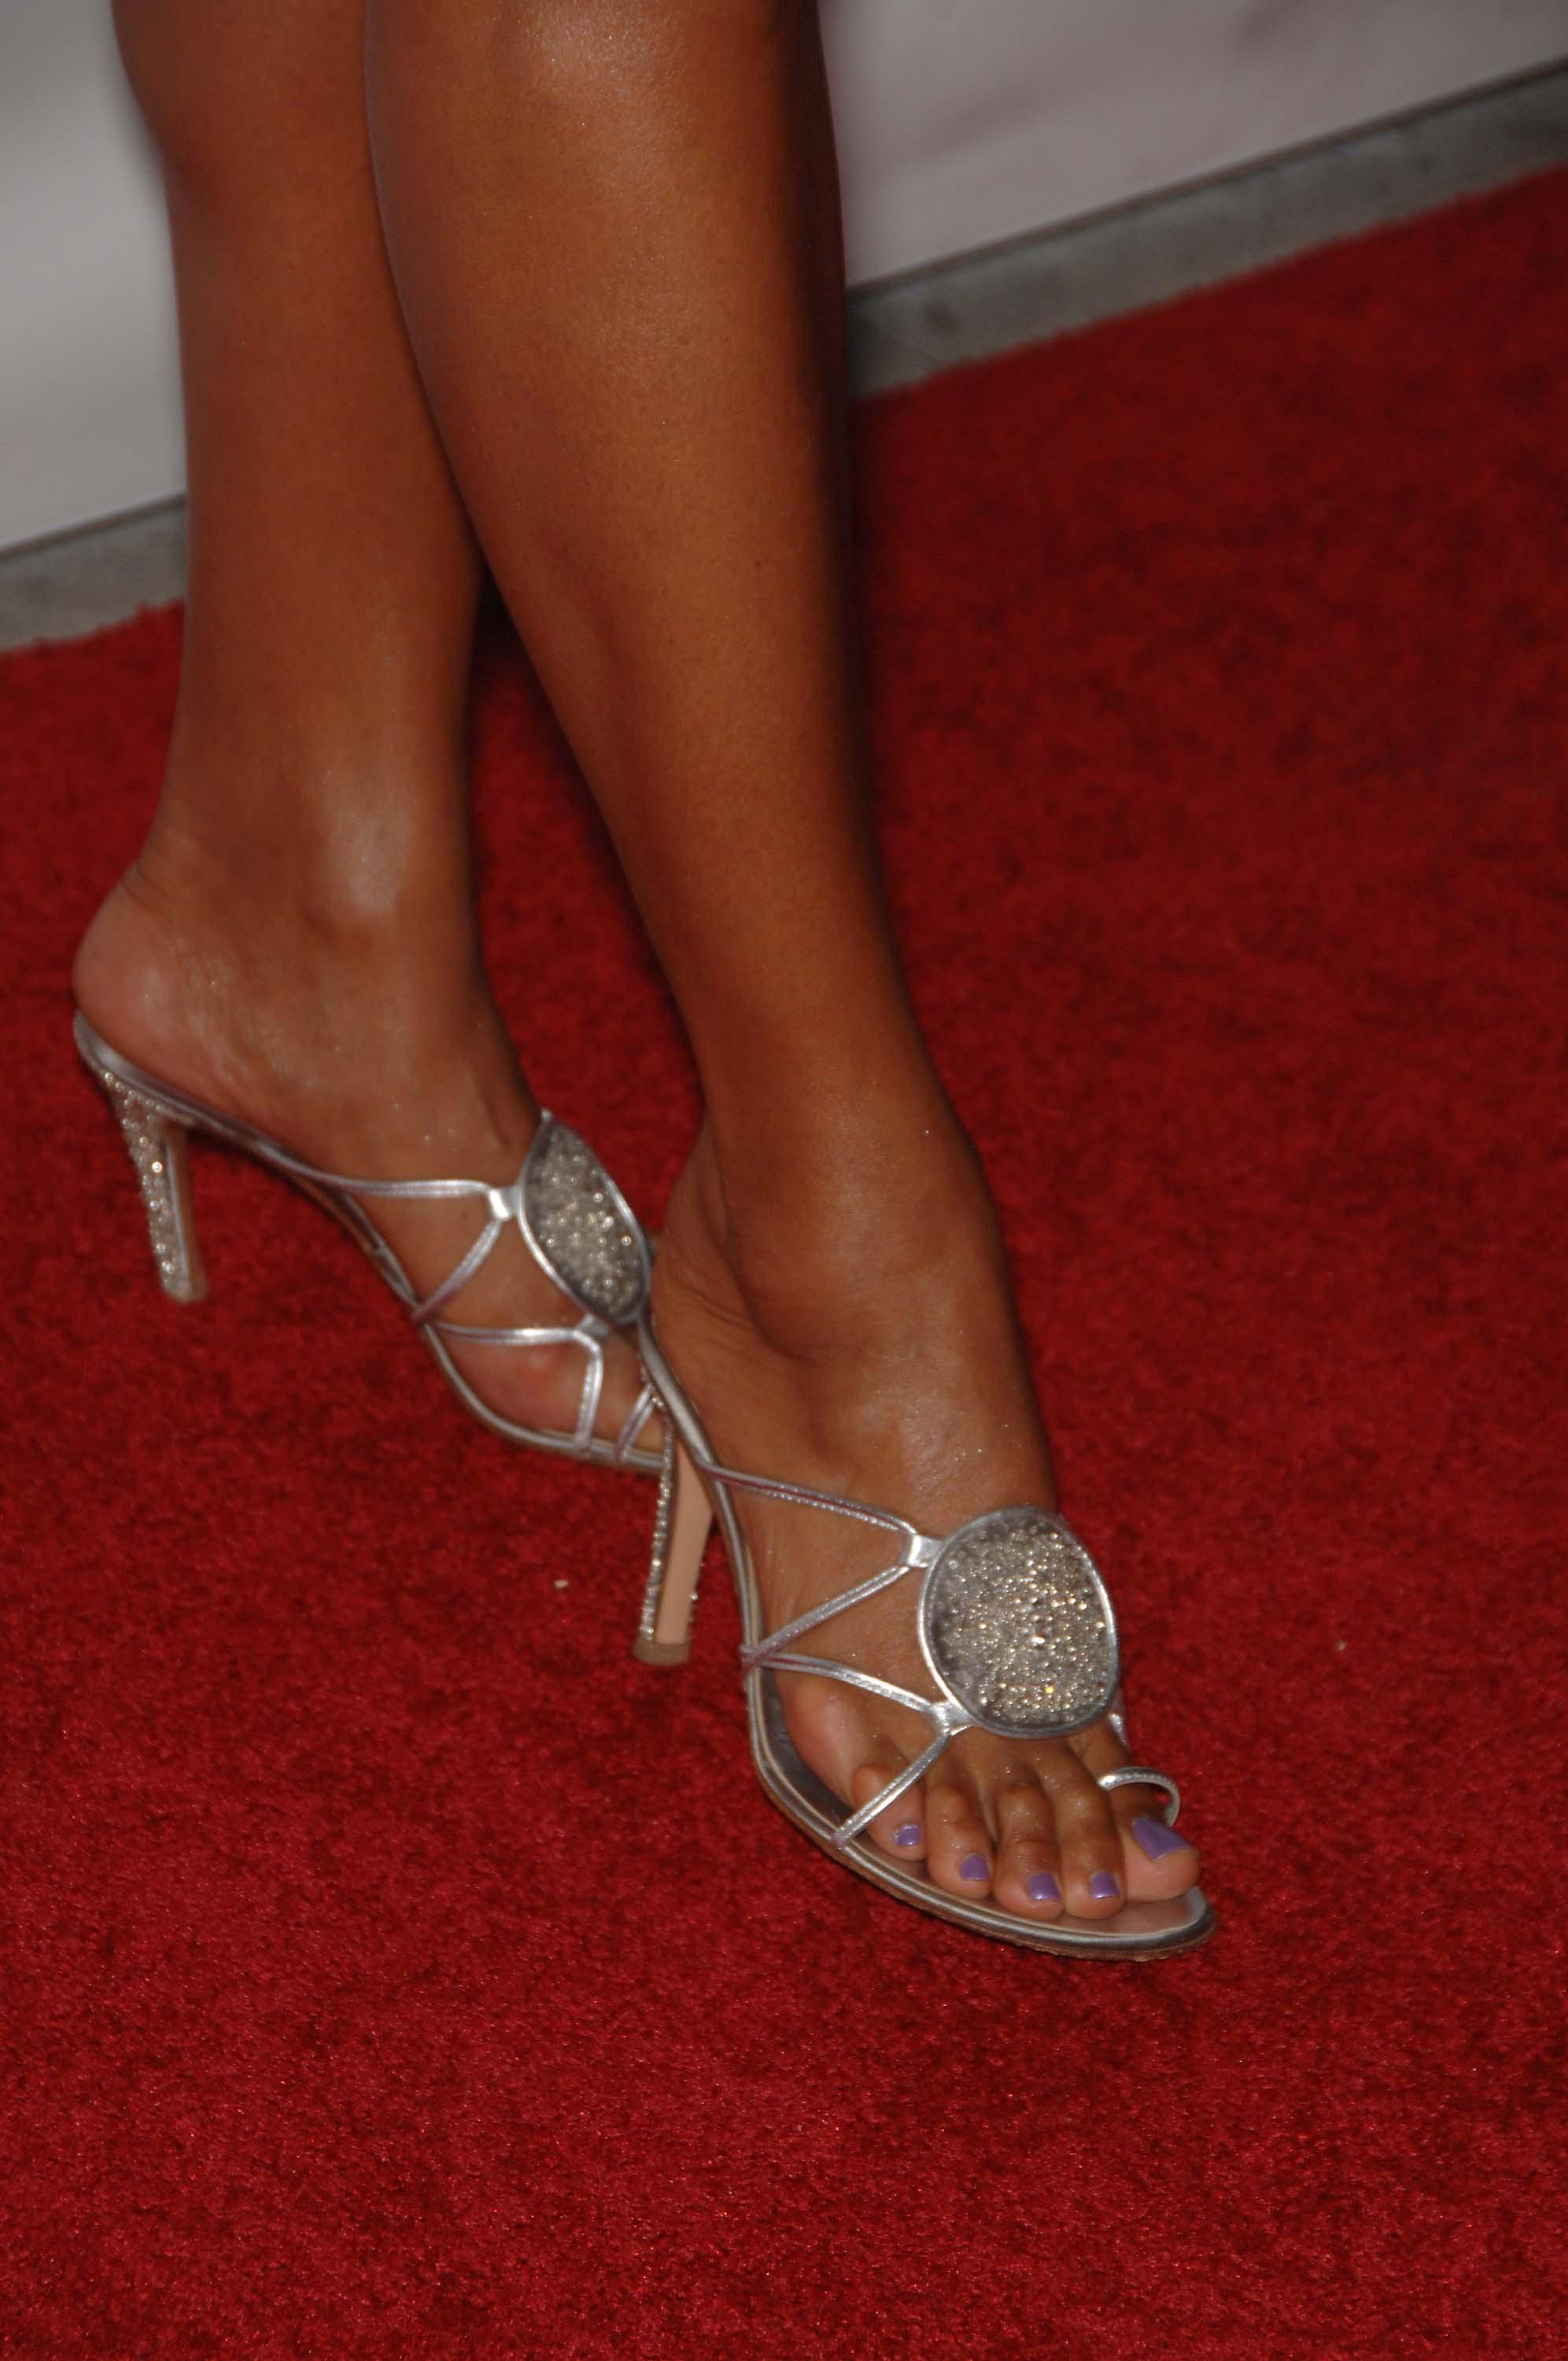 Feet Eva LaRue nude photos 2019